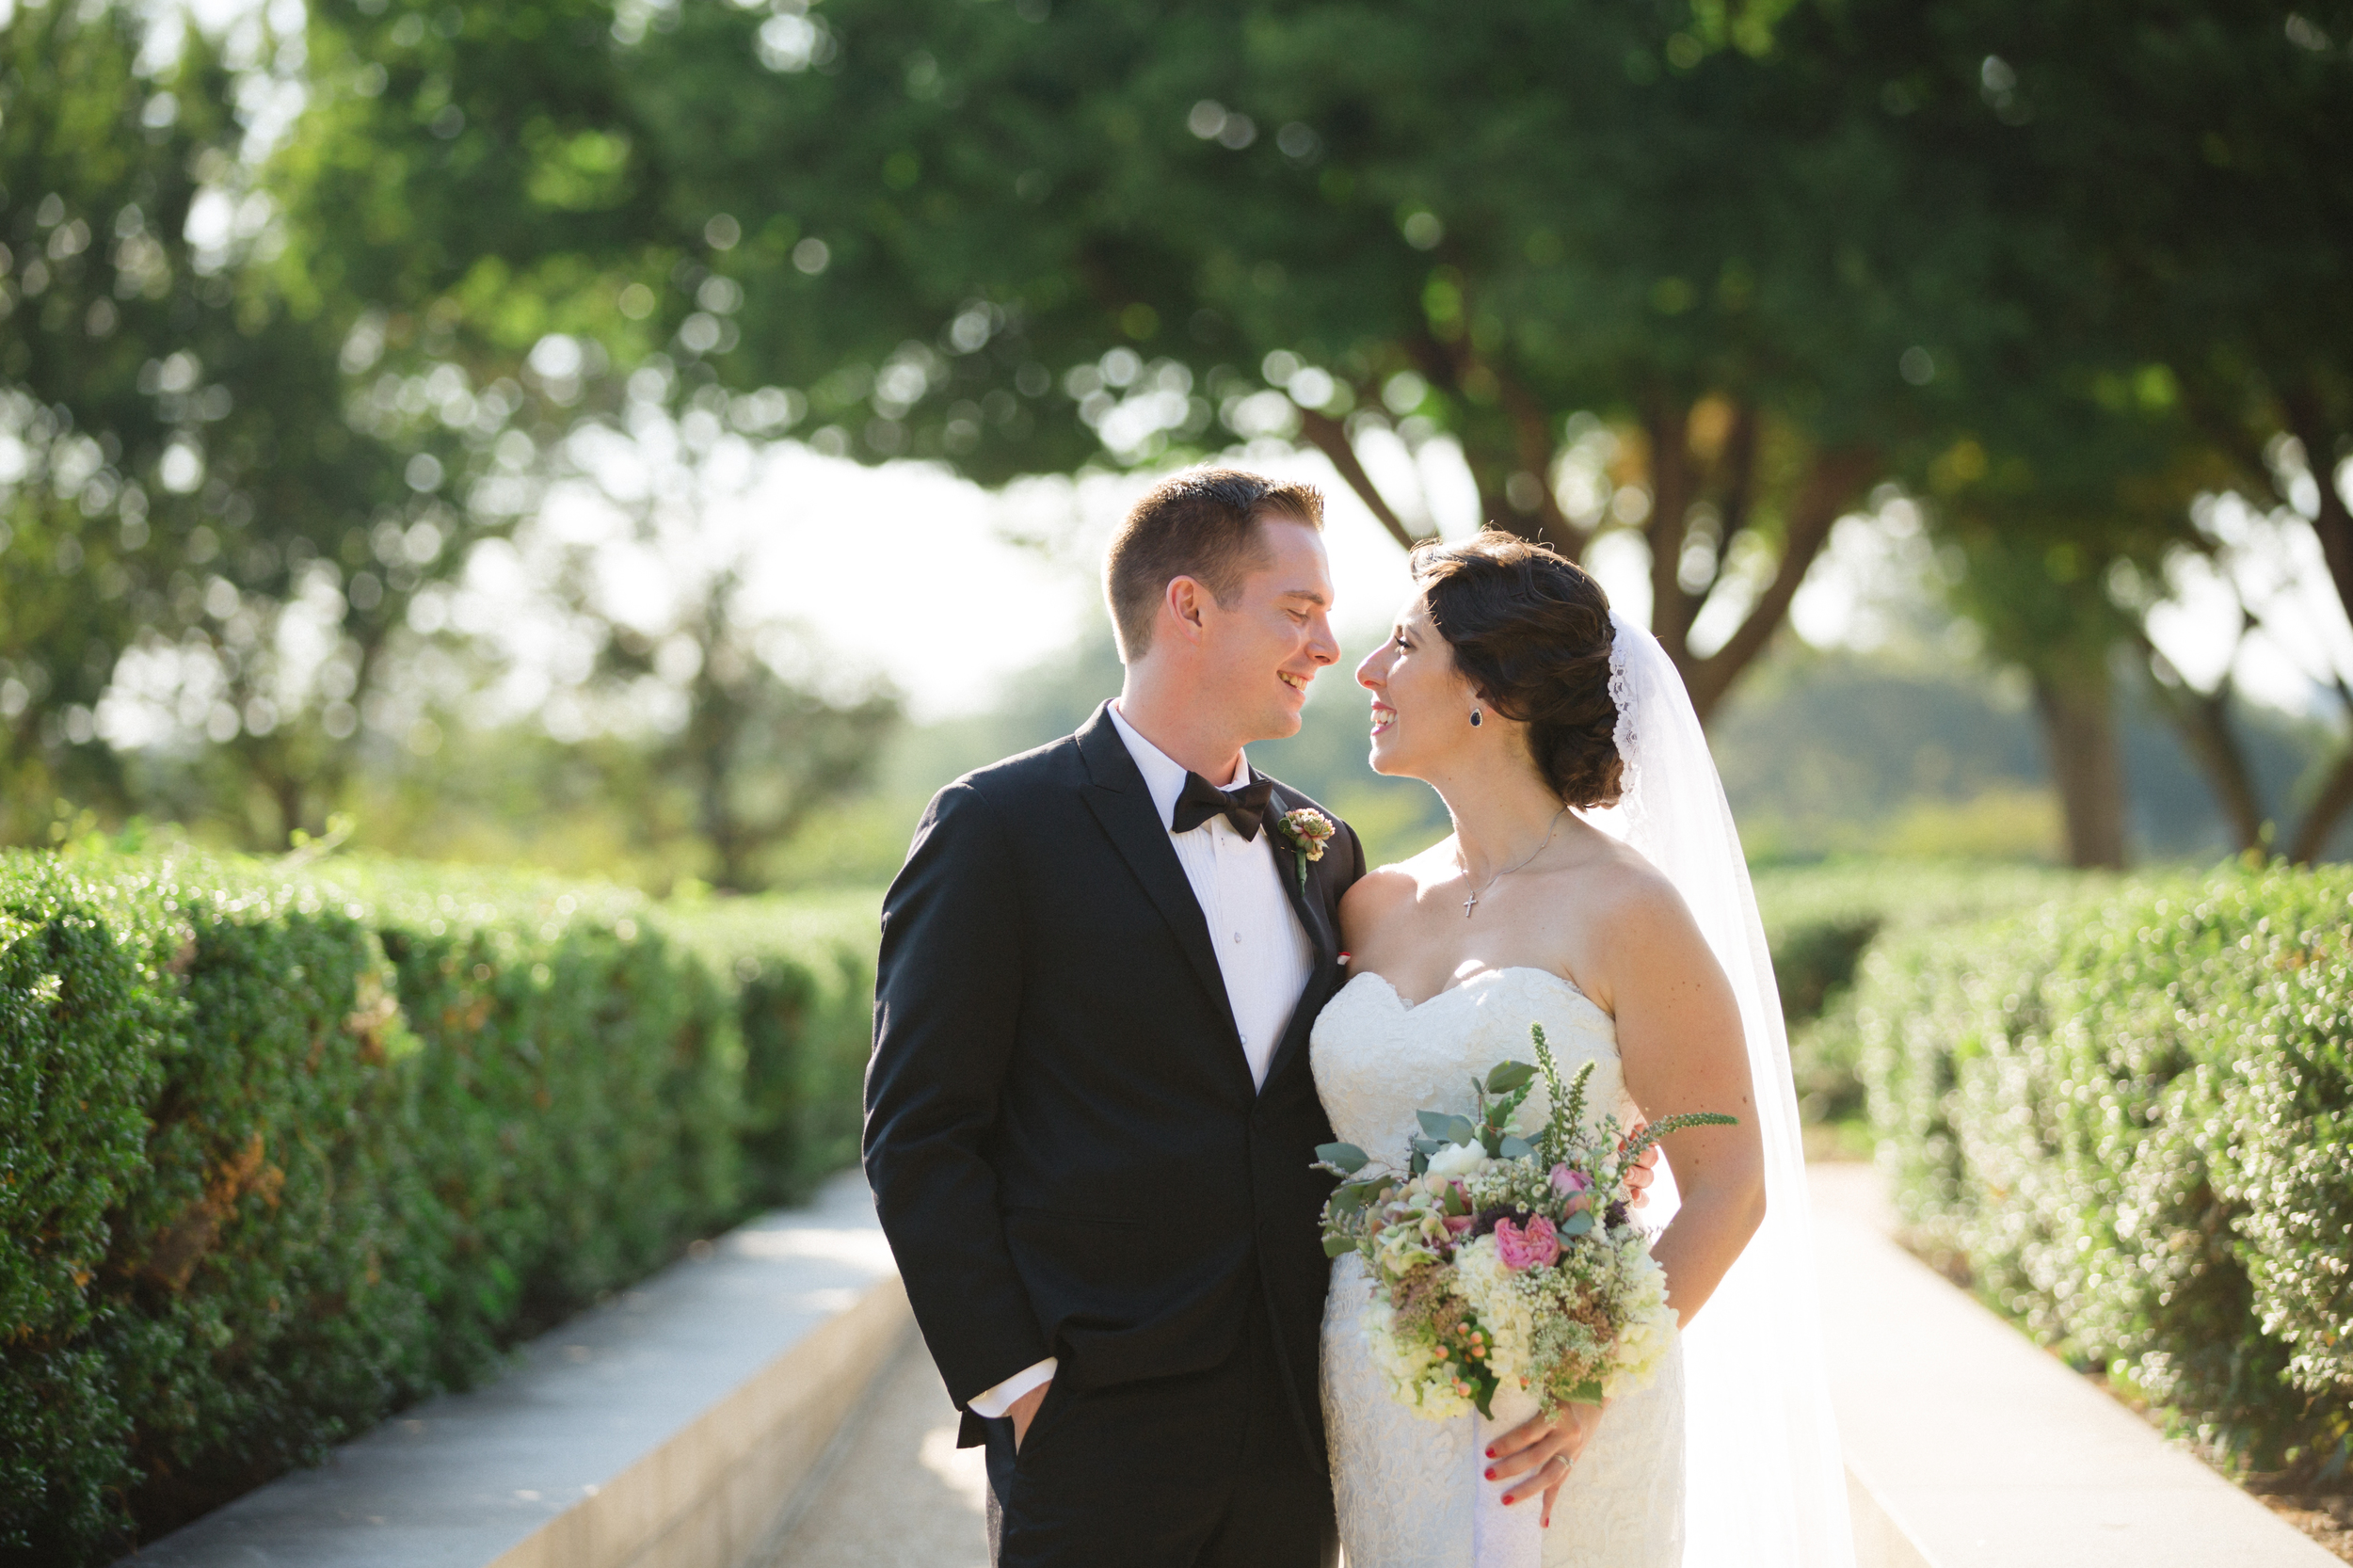 Vness_Photography_Wedding_Photographer_Washington-DC_Fish_Wedding-611.JPG